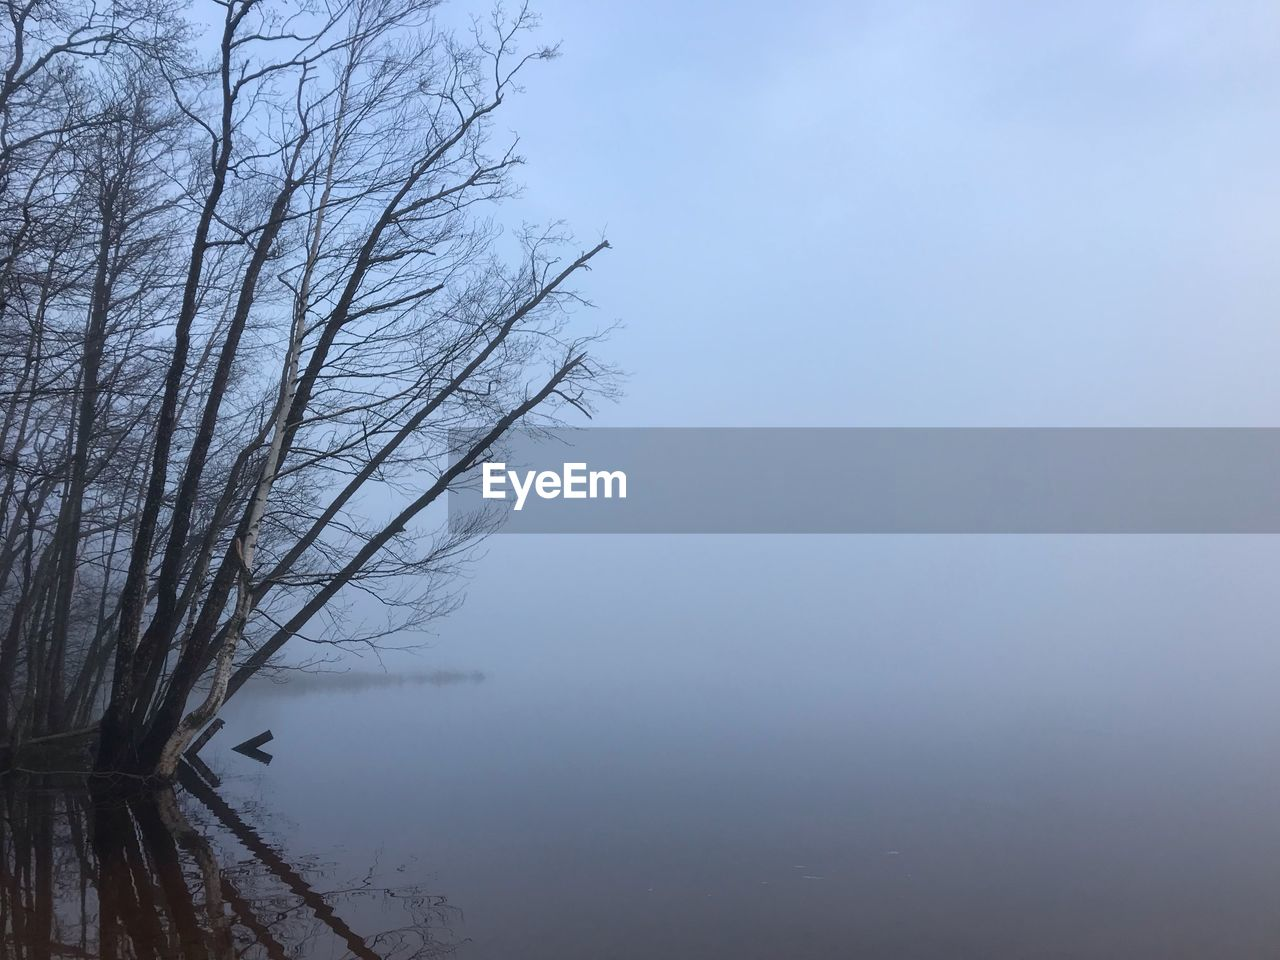 tree, water, tranquility, bare tree, beauty in nature, tranquil scene, sky, fog, plant, scenics - nature, lake, no people, nature, branch, reflection, day, non-urban scene, waterfront, outdoors, hazy